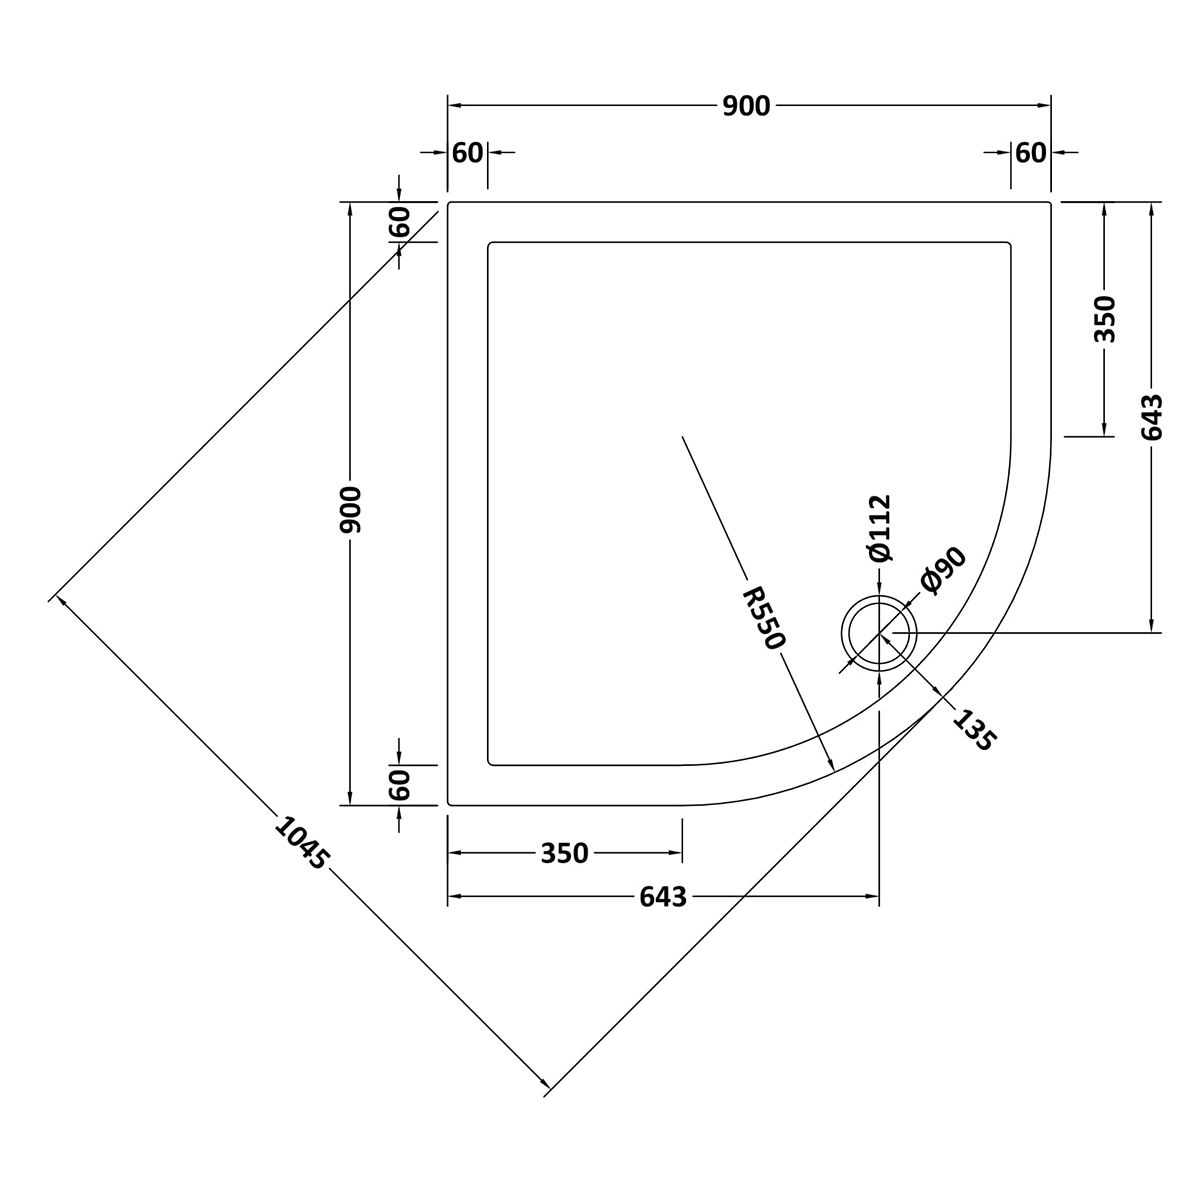 900 x 900 Shower Tray Slate Grey Quadrant Low Profile by Pearlstone Line Drawing